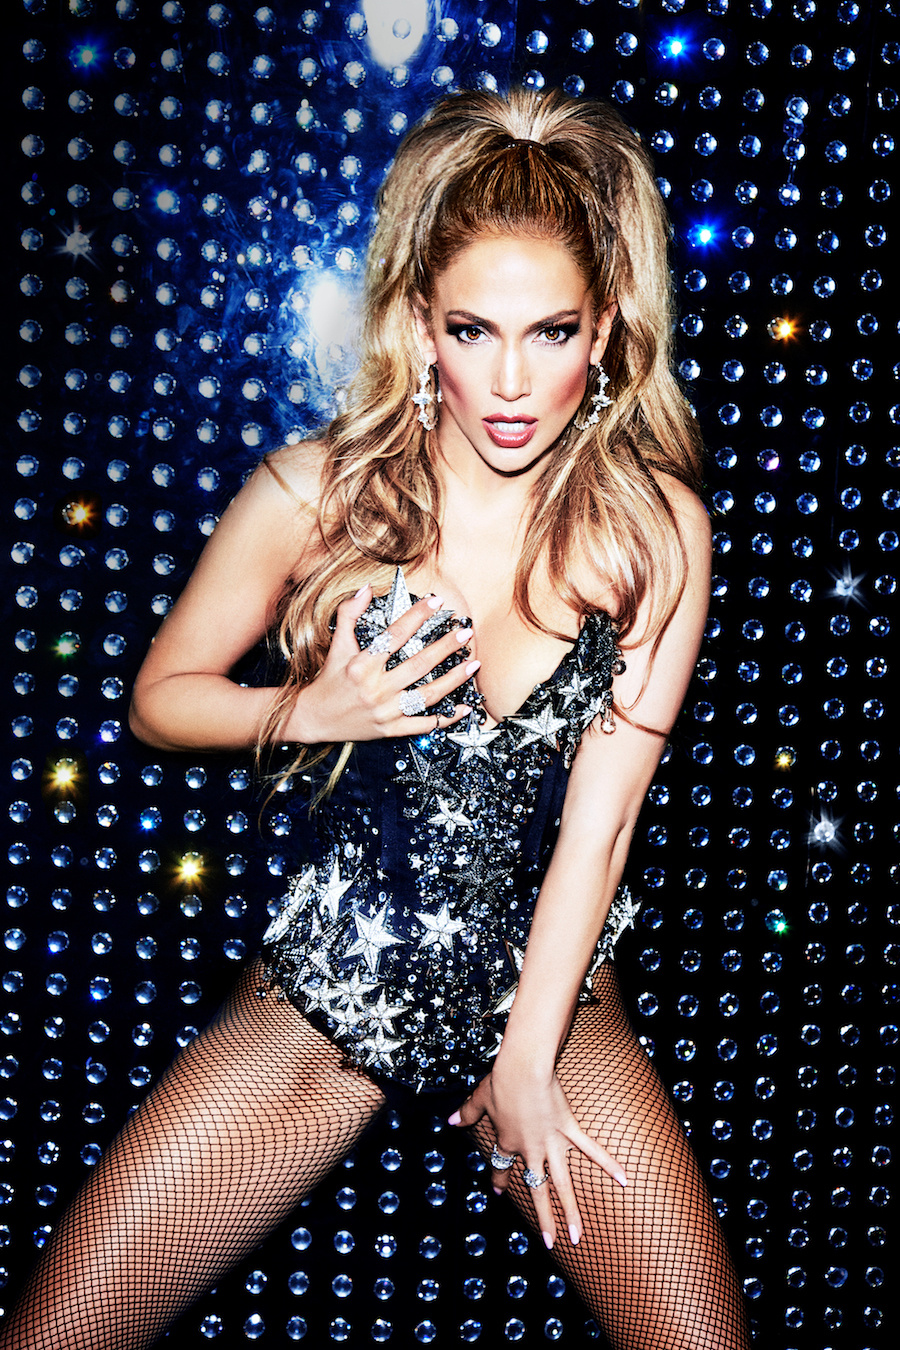 JENNIFER LOPEZ COVERS SPECIAL EDITION OF PAPER MAGAZINE